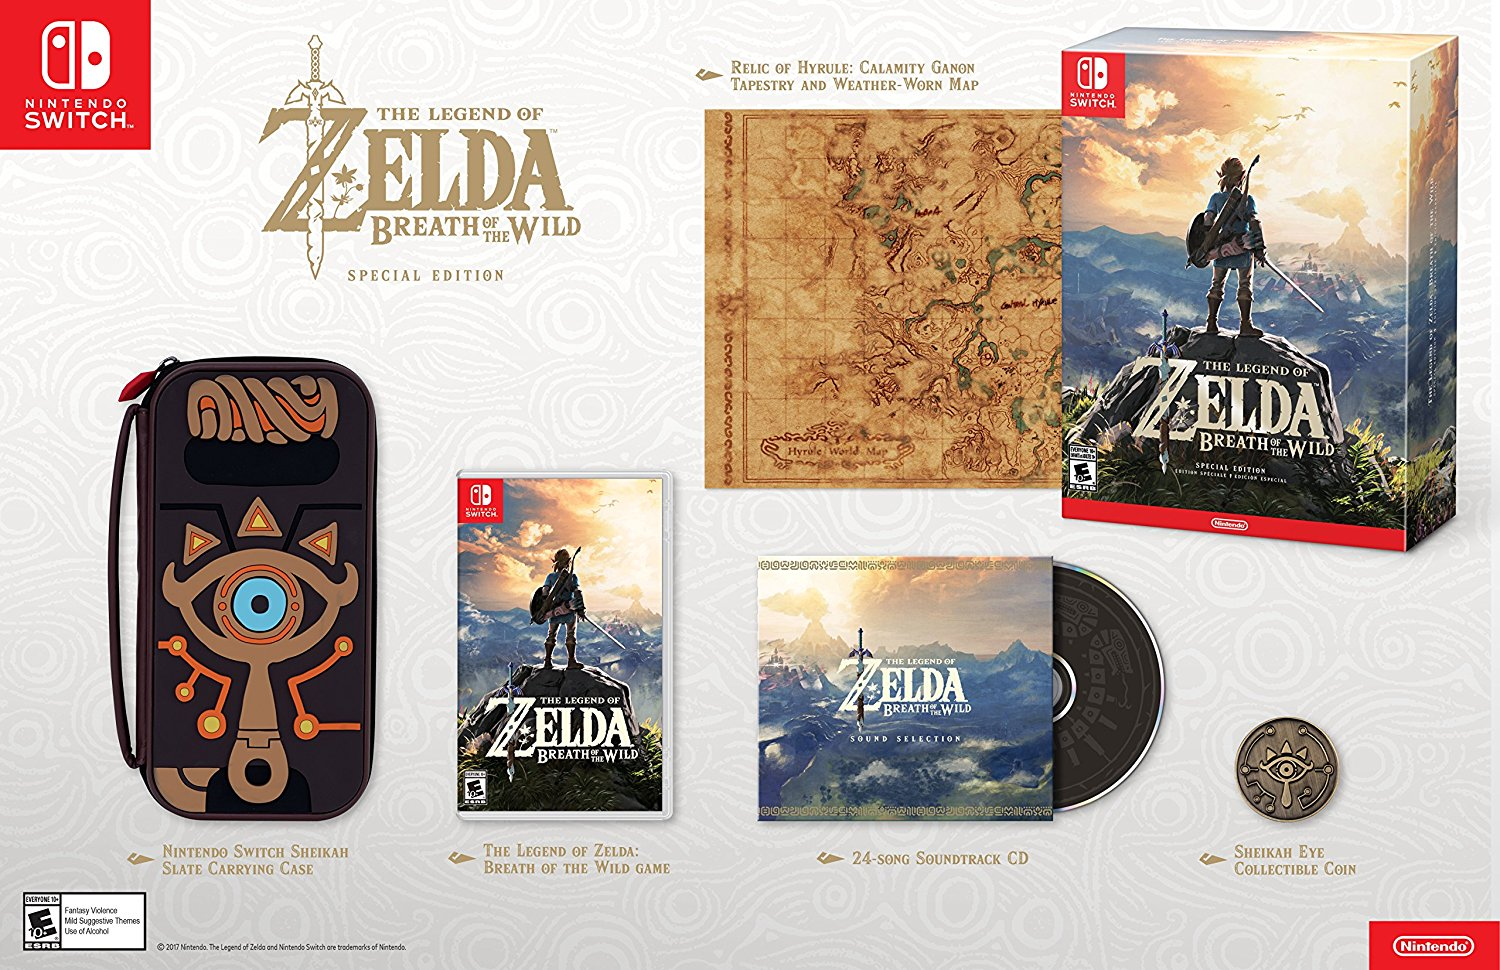 The Legend of Zelda Breath of the Wild Special Edition US